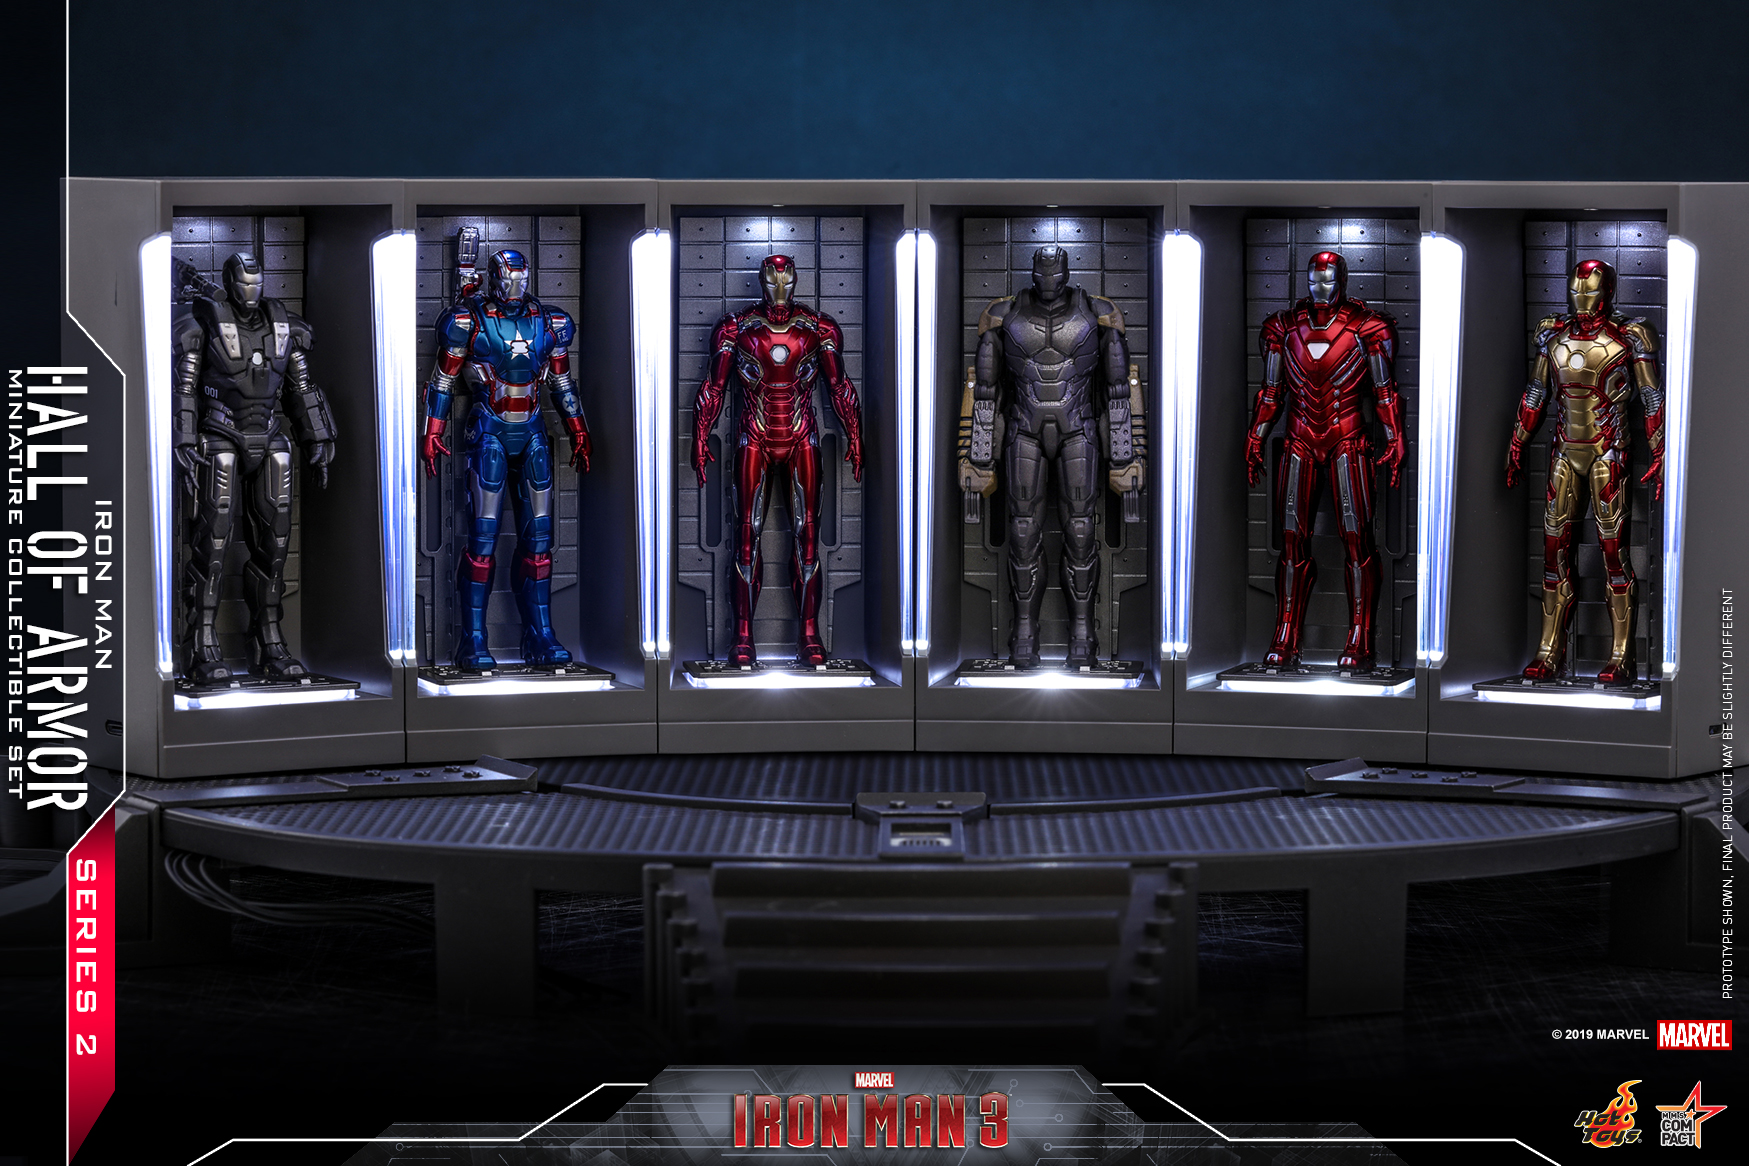 Hot Toys - IM3 - Iron Man Hall of Armor Series 2 Miniature Collectible Set_PR1